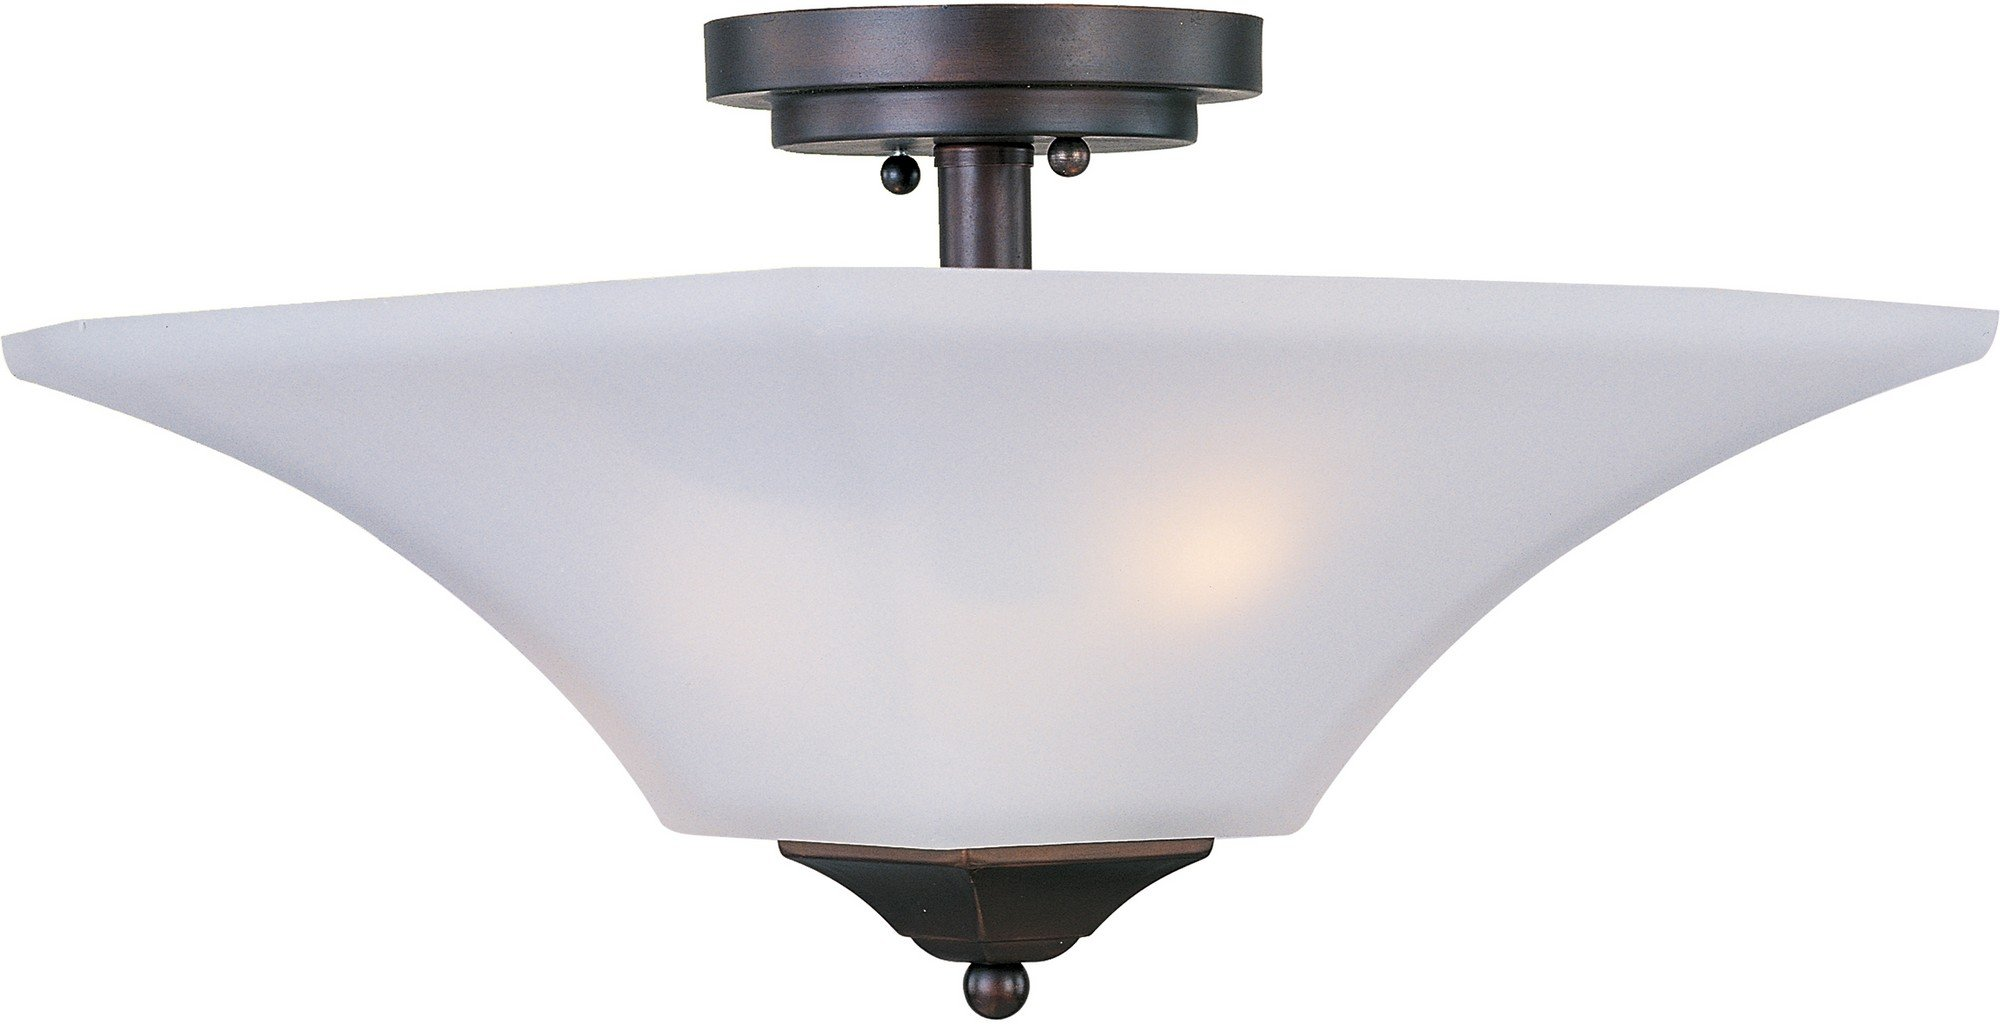 Maxim 20091FTOI Aurora 2-Light Semi-Flush Mount, Oil Rubbed Bronze Finish, Frosted Glass, MB Incandescent Incandescent Bulb , 40W Max., Dry Safety Rating, Standard Dimmable, Glass Shade Material, Rated Lumens